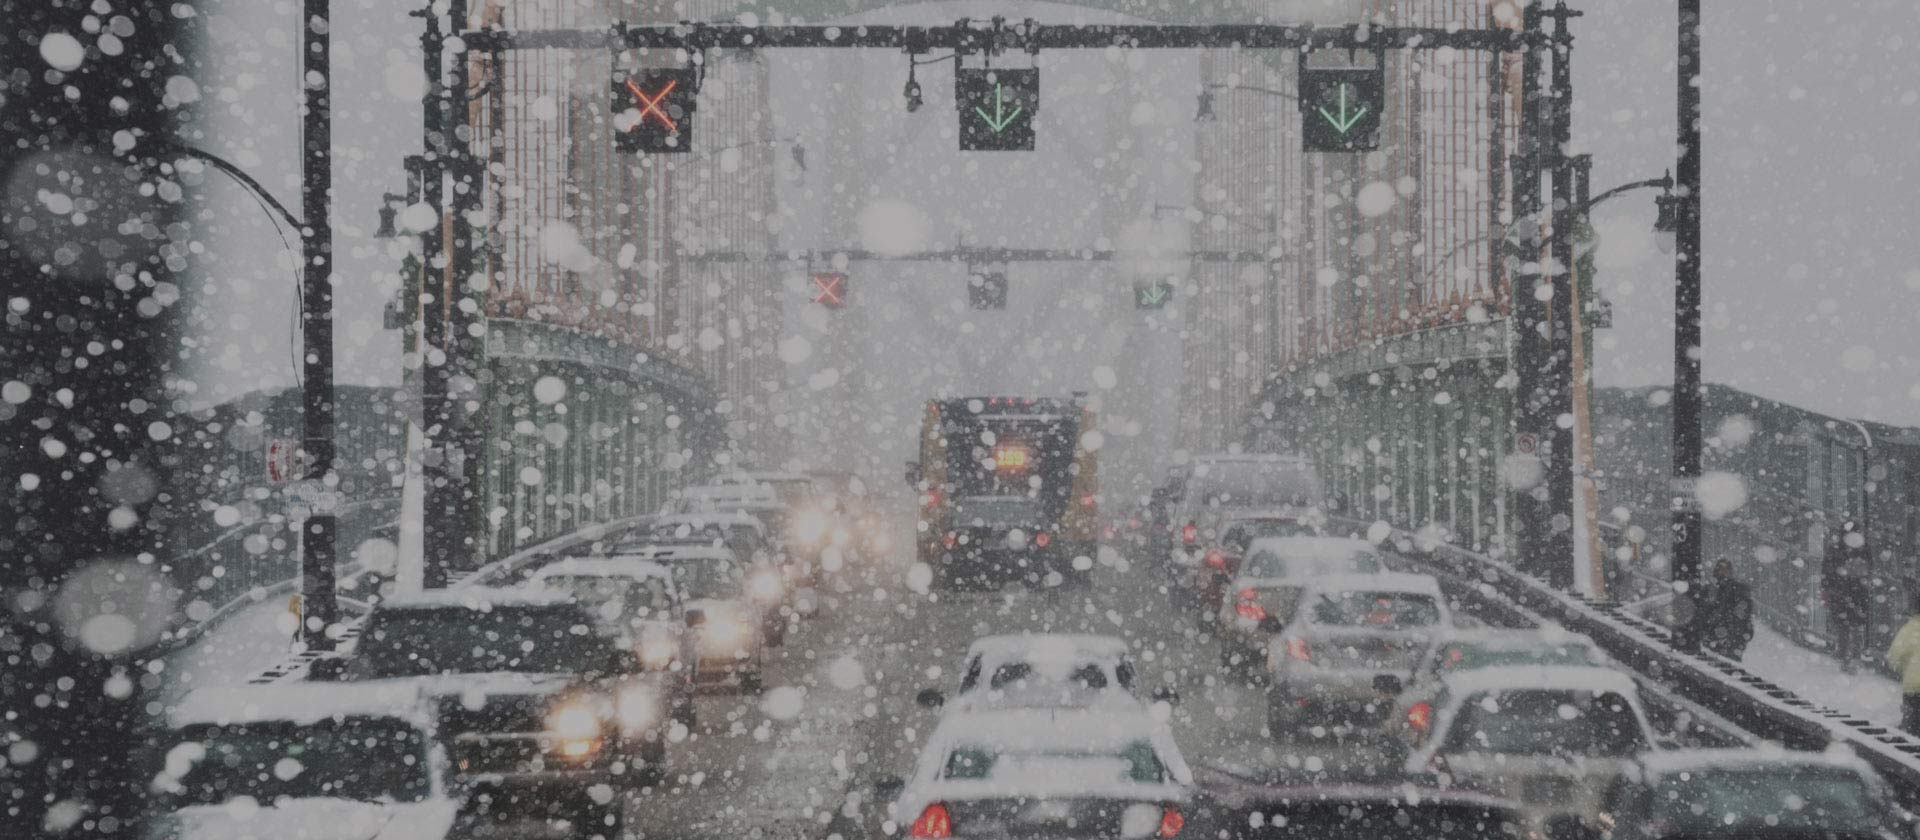 Traffic in the snow